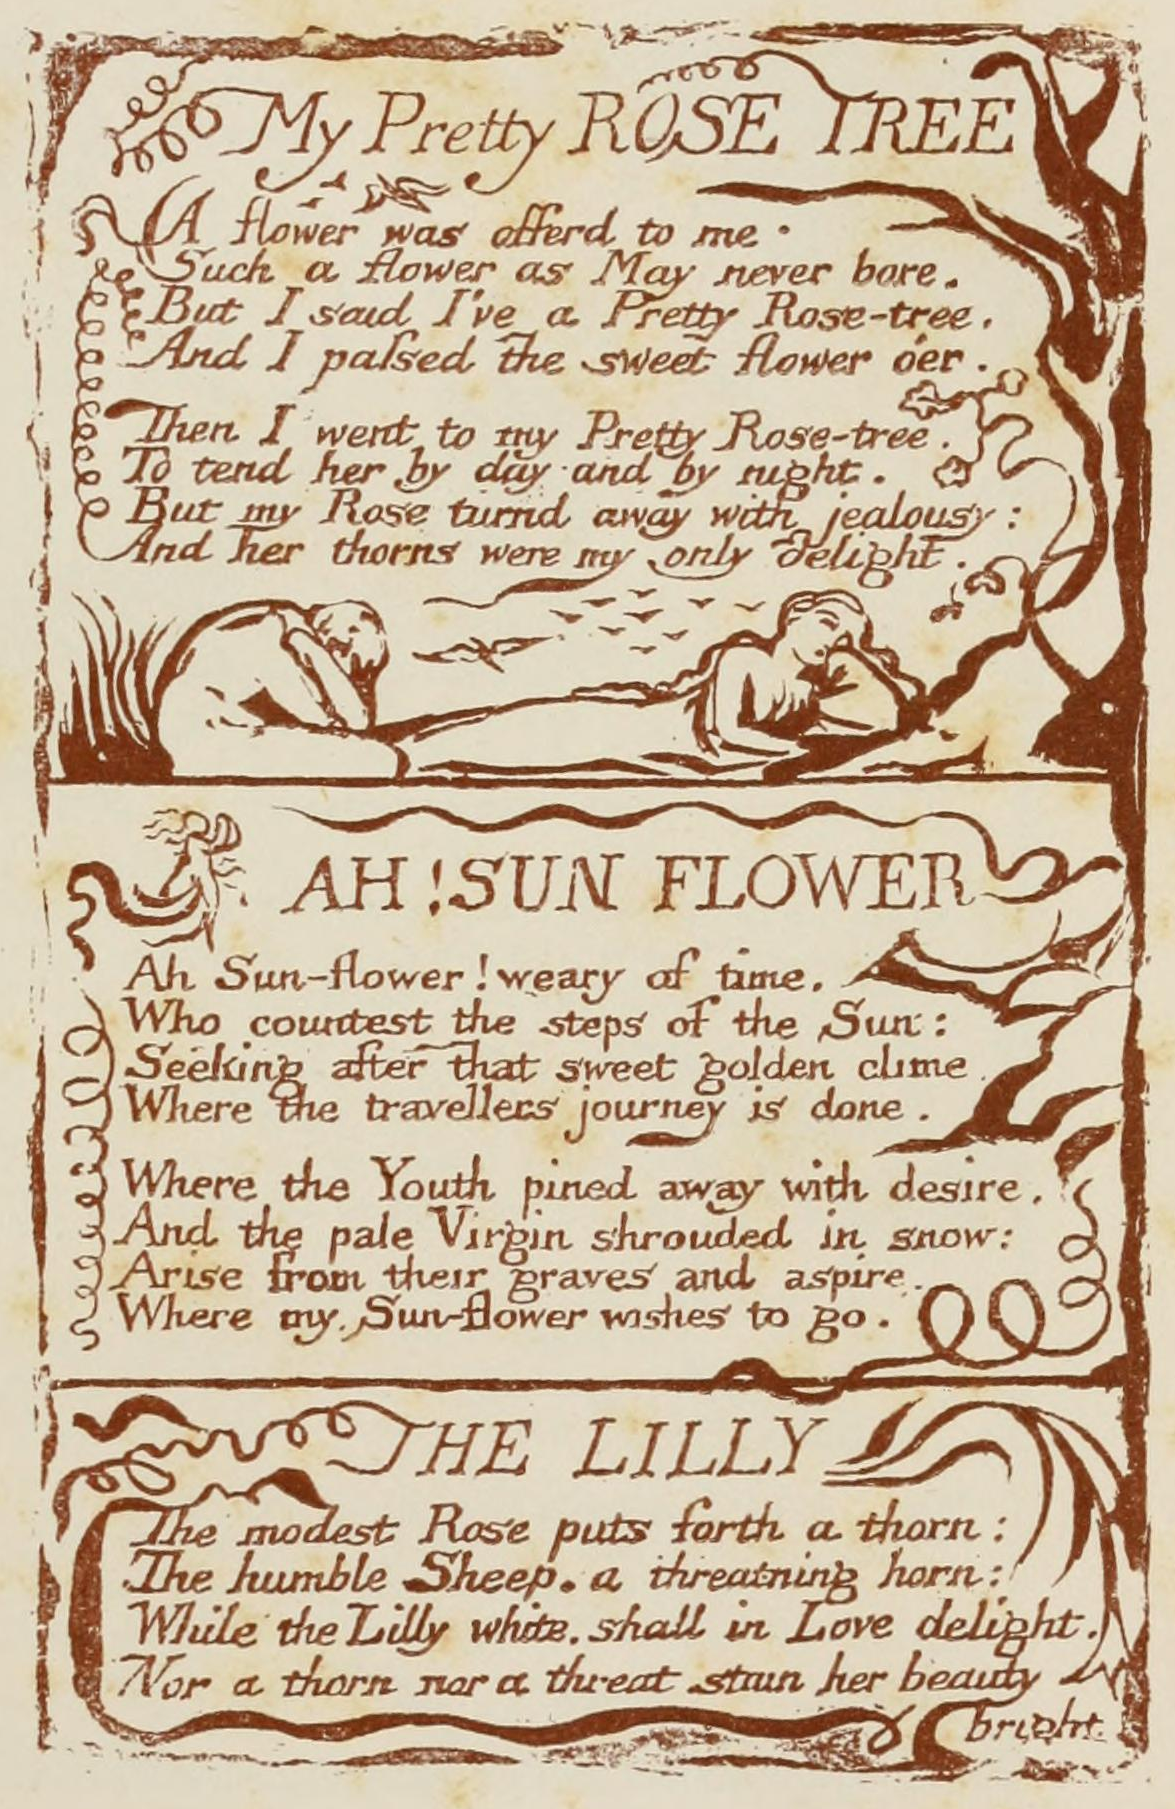 innocence and experience in william blakes poetry The project gutenberg ebook of songs of innocence and songs of experience, by william blake this ebook is for the use of anyone anywhere at no cost and with almost no restrictions whatsoever.